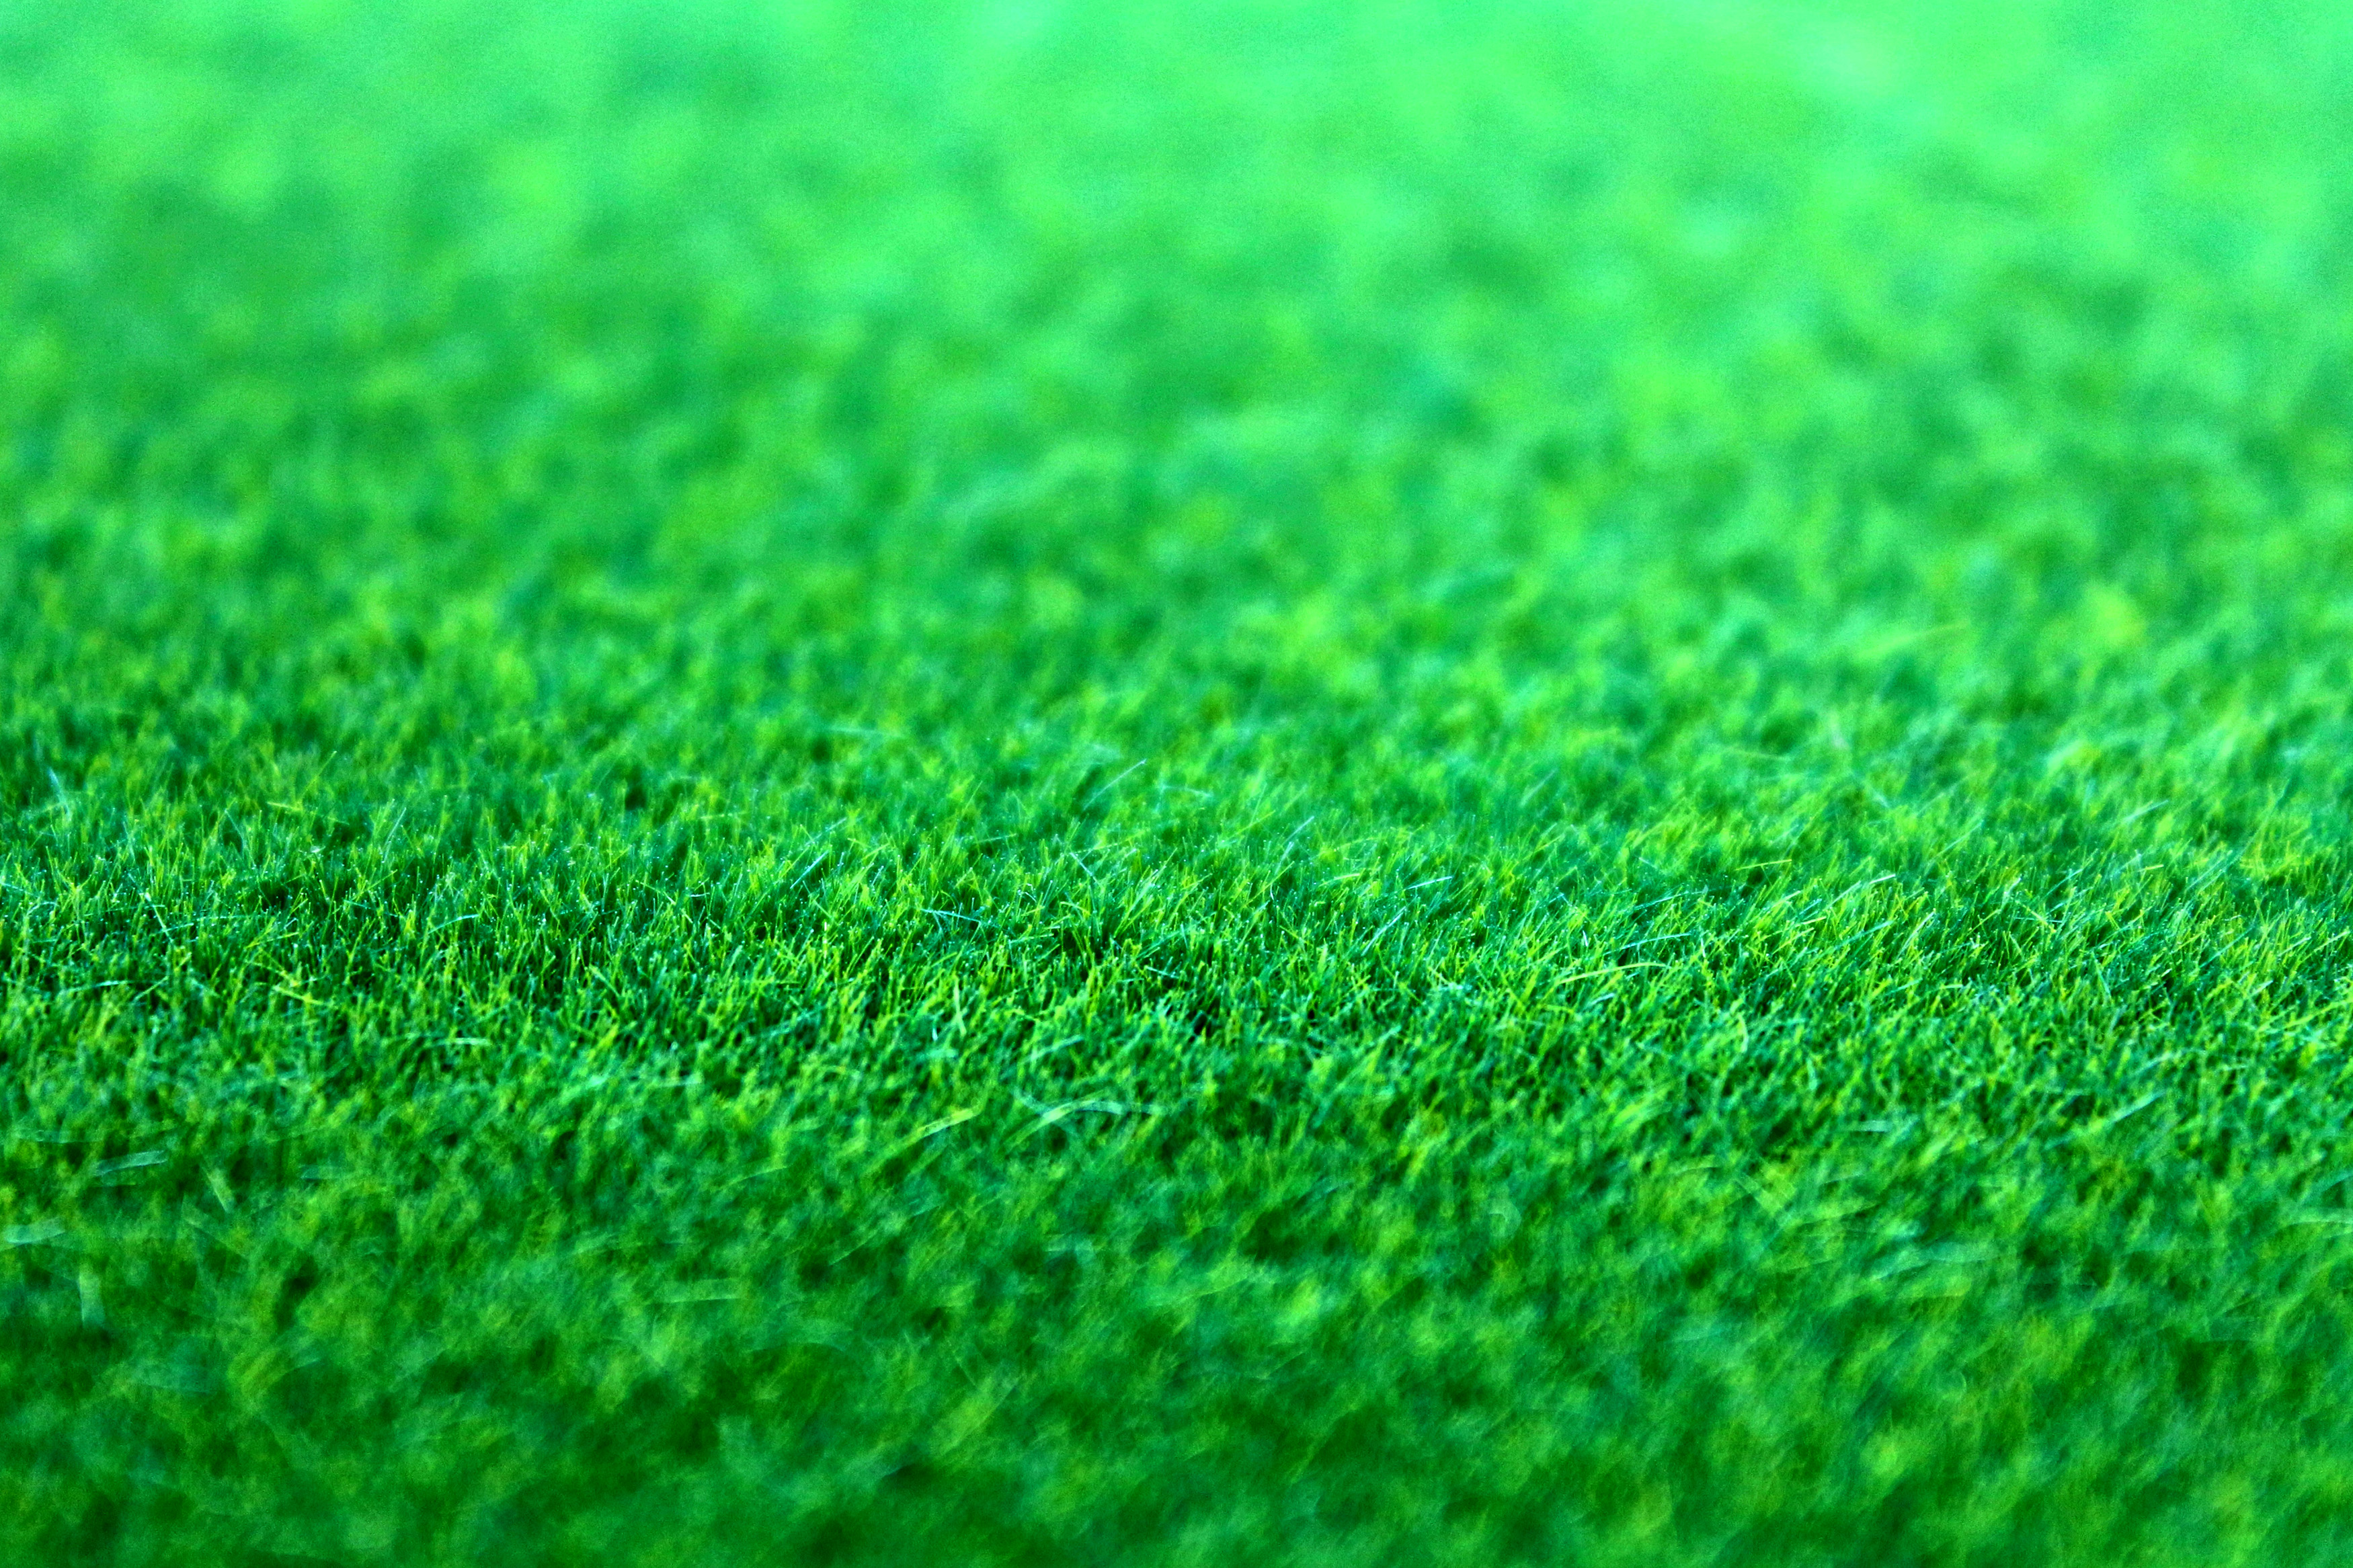 Pitch Black Wallpaper Iphone X Green Grass 183 Free Stock Photo